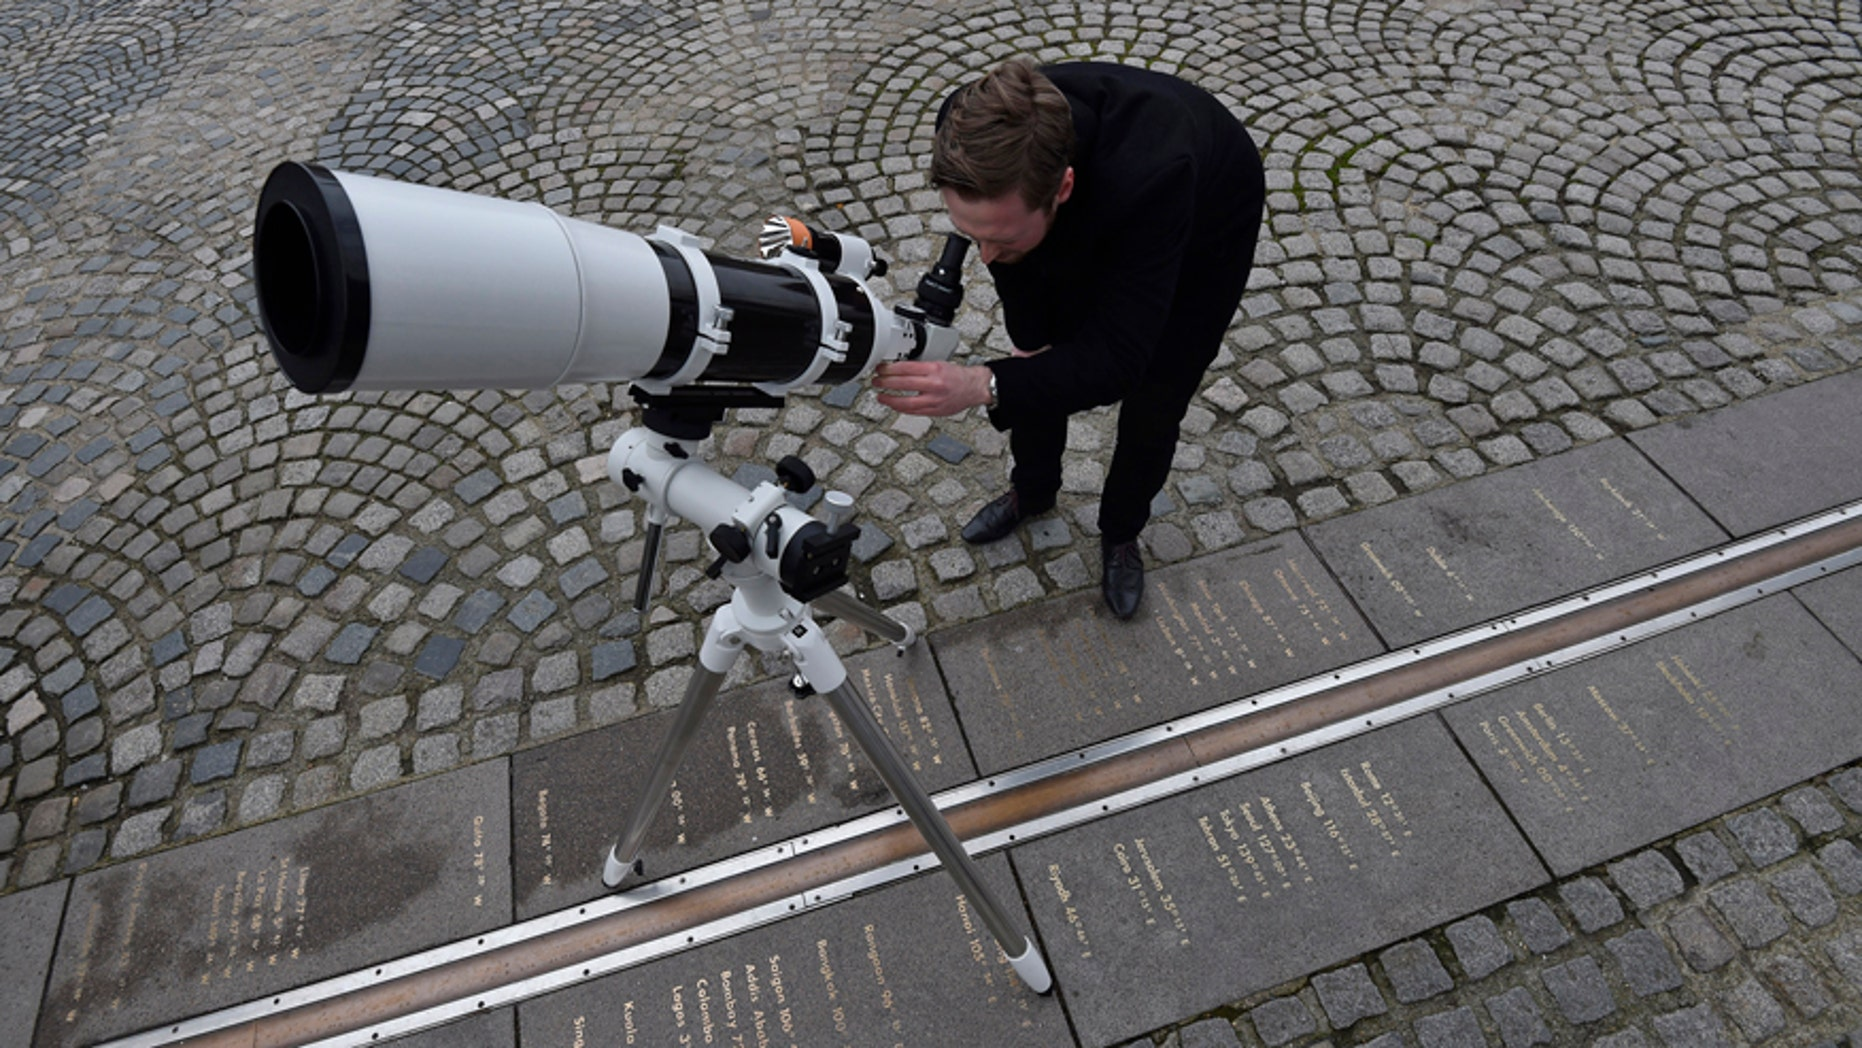 Astronomer Brendan Owens poses with a refractive telescope on the Meridian line at The Royal Observatory in Greenwich, south east London March 19, 2015.